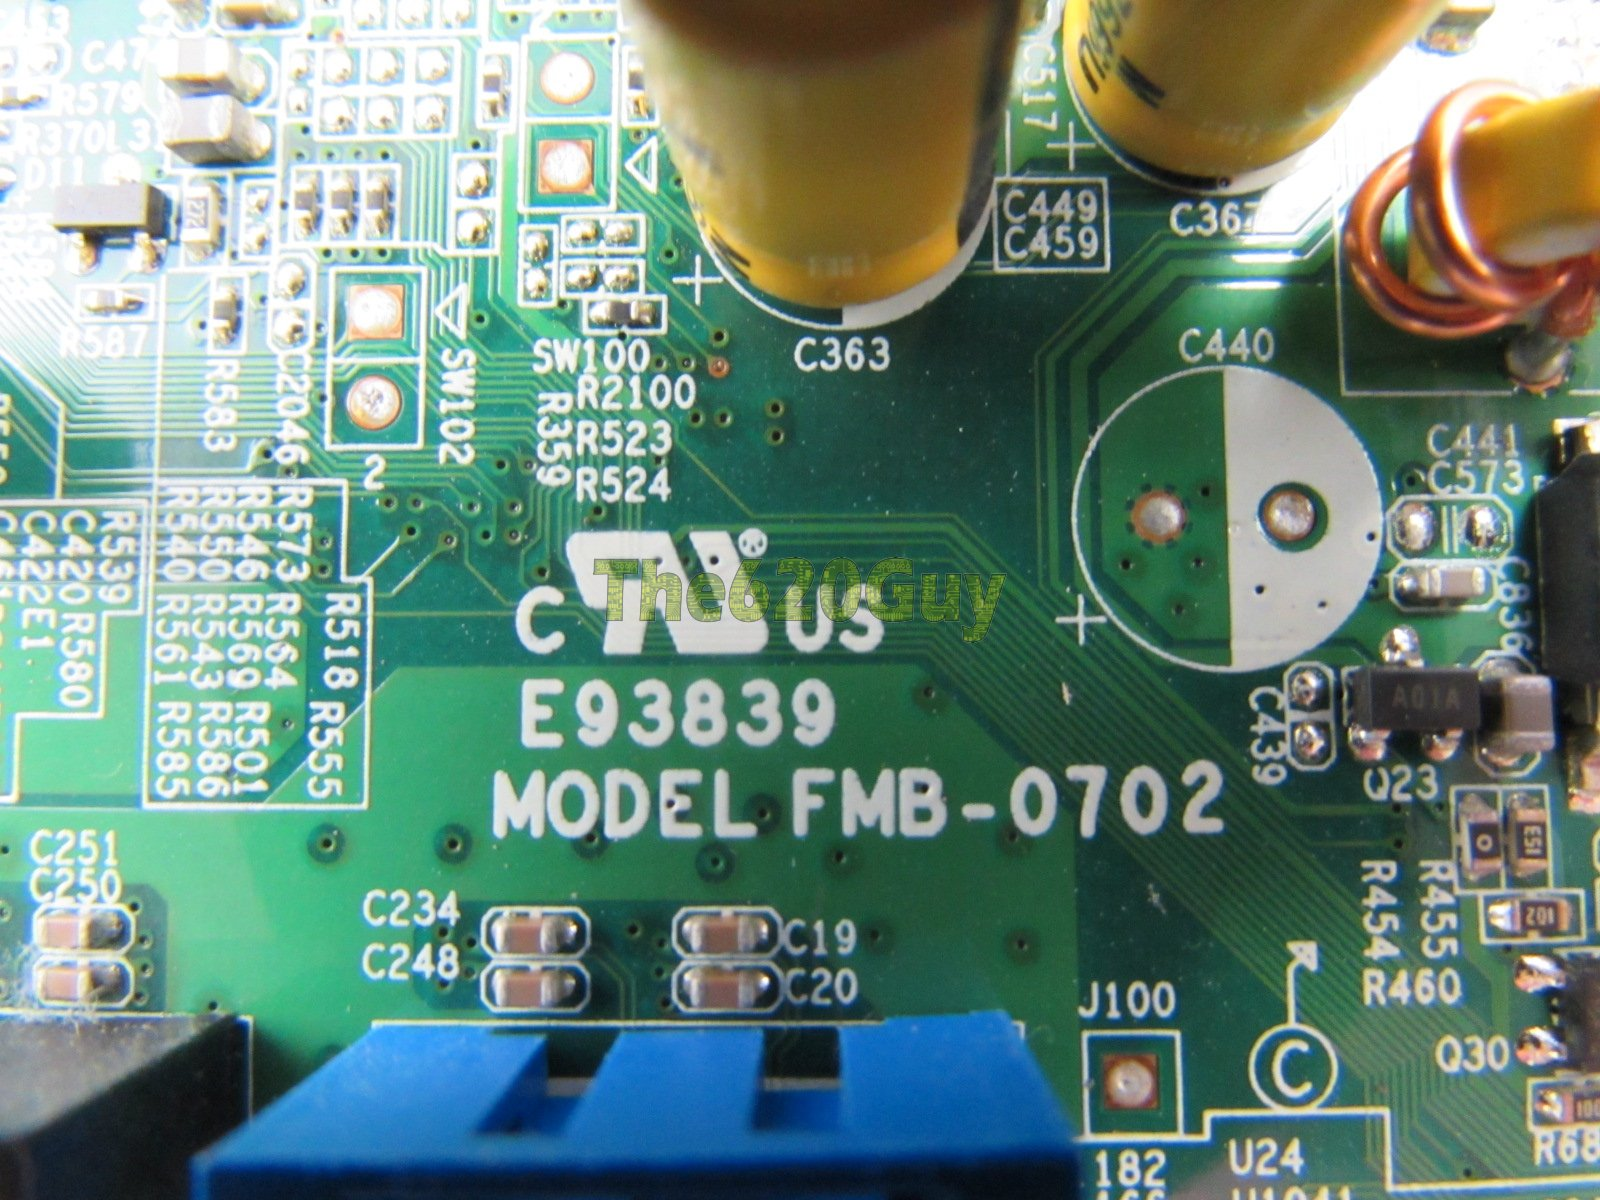 Fmb 0601 Motherboard manual